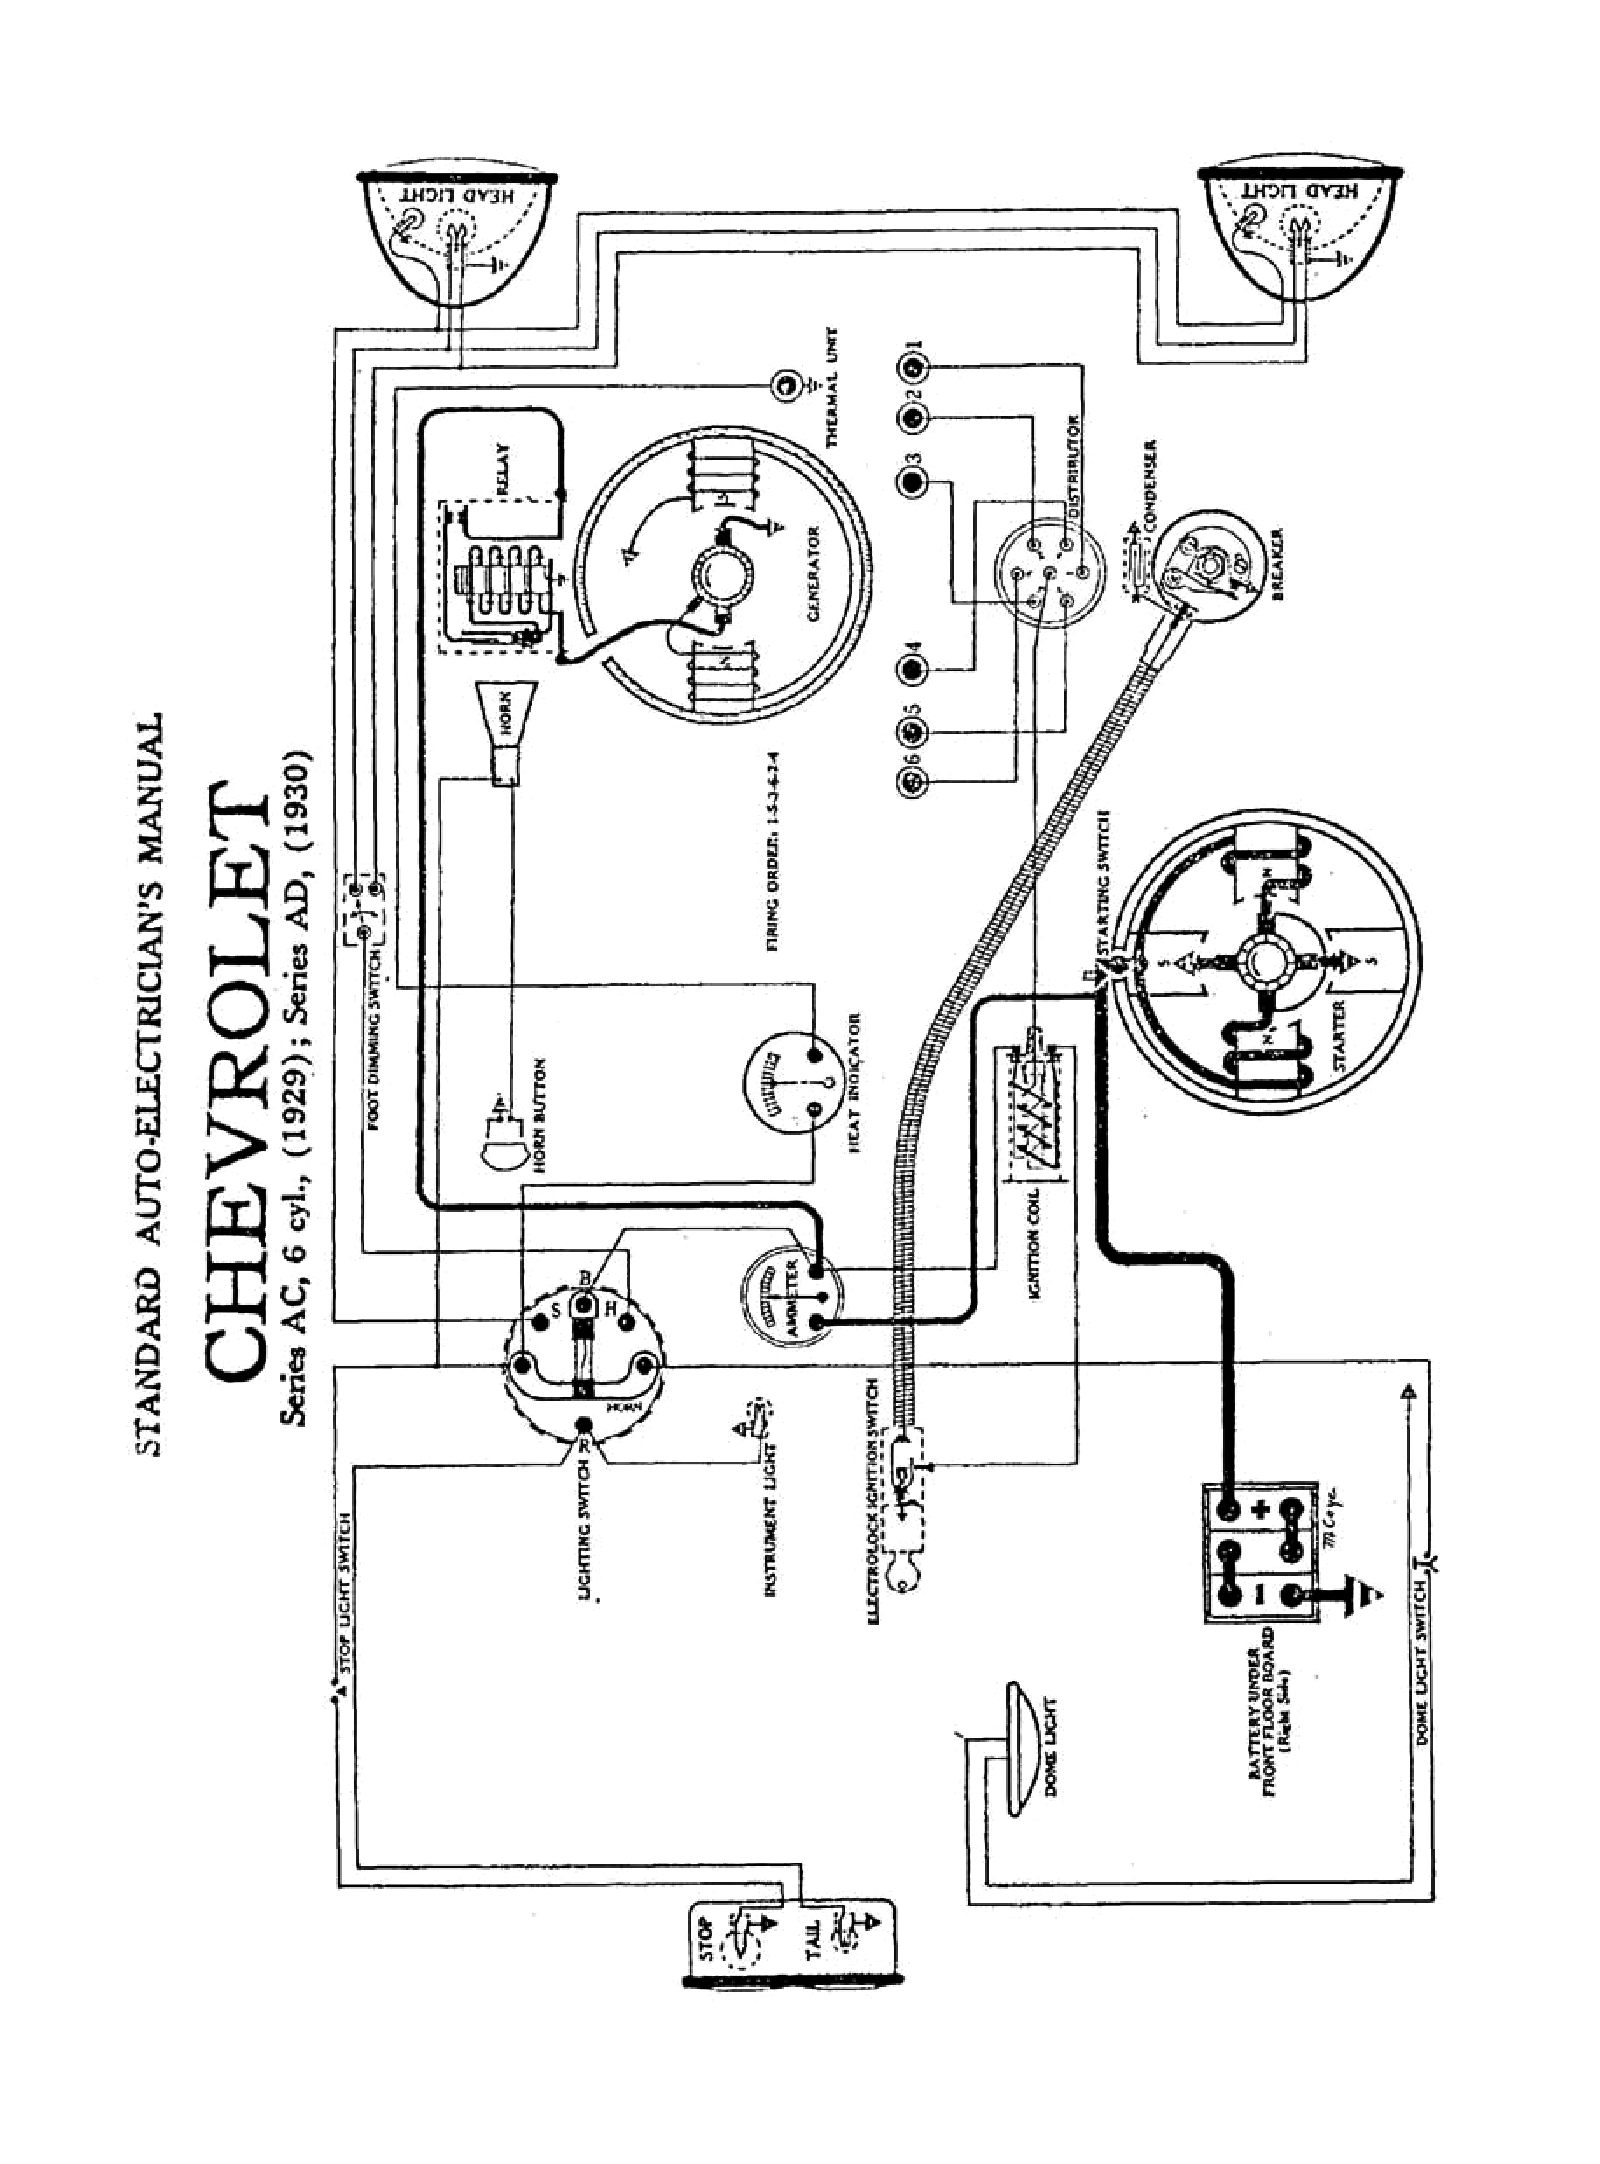 chevy wiring diagrams rh chevy oldcarmanualproject com Ford Model A Wiring Diagram 1930 Ford Wiring Diagram